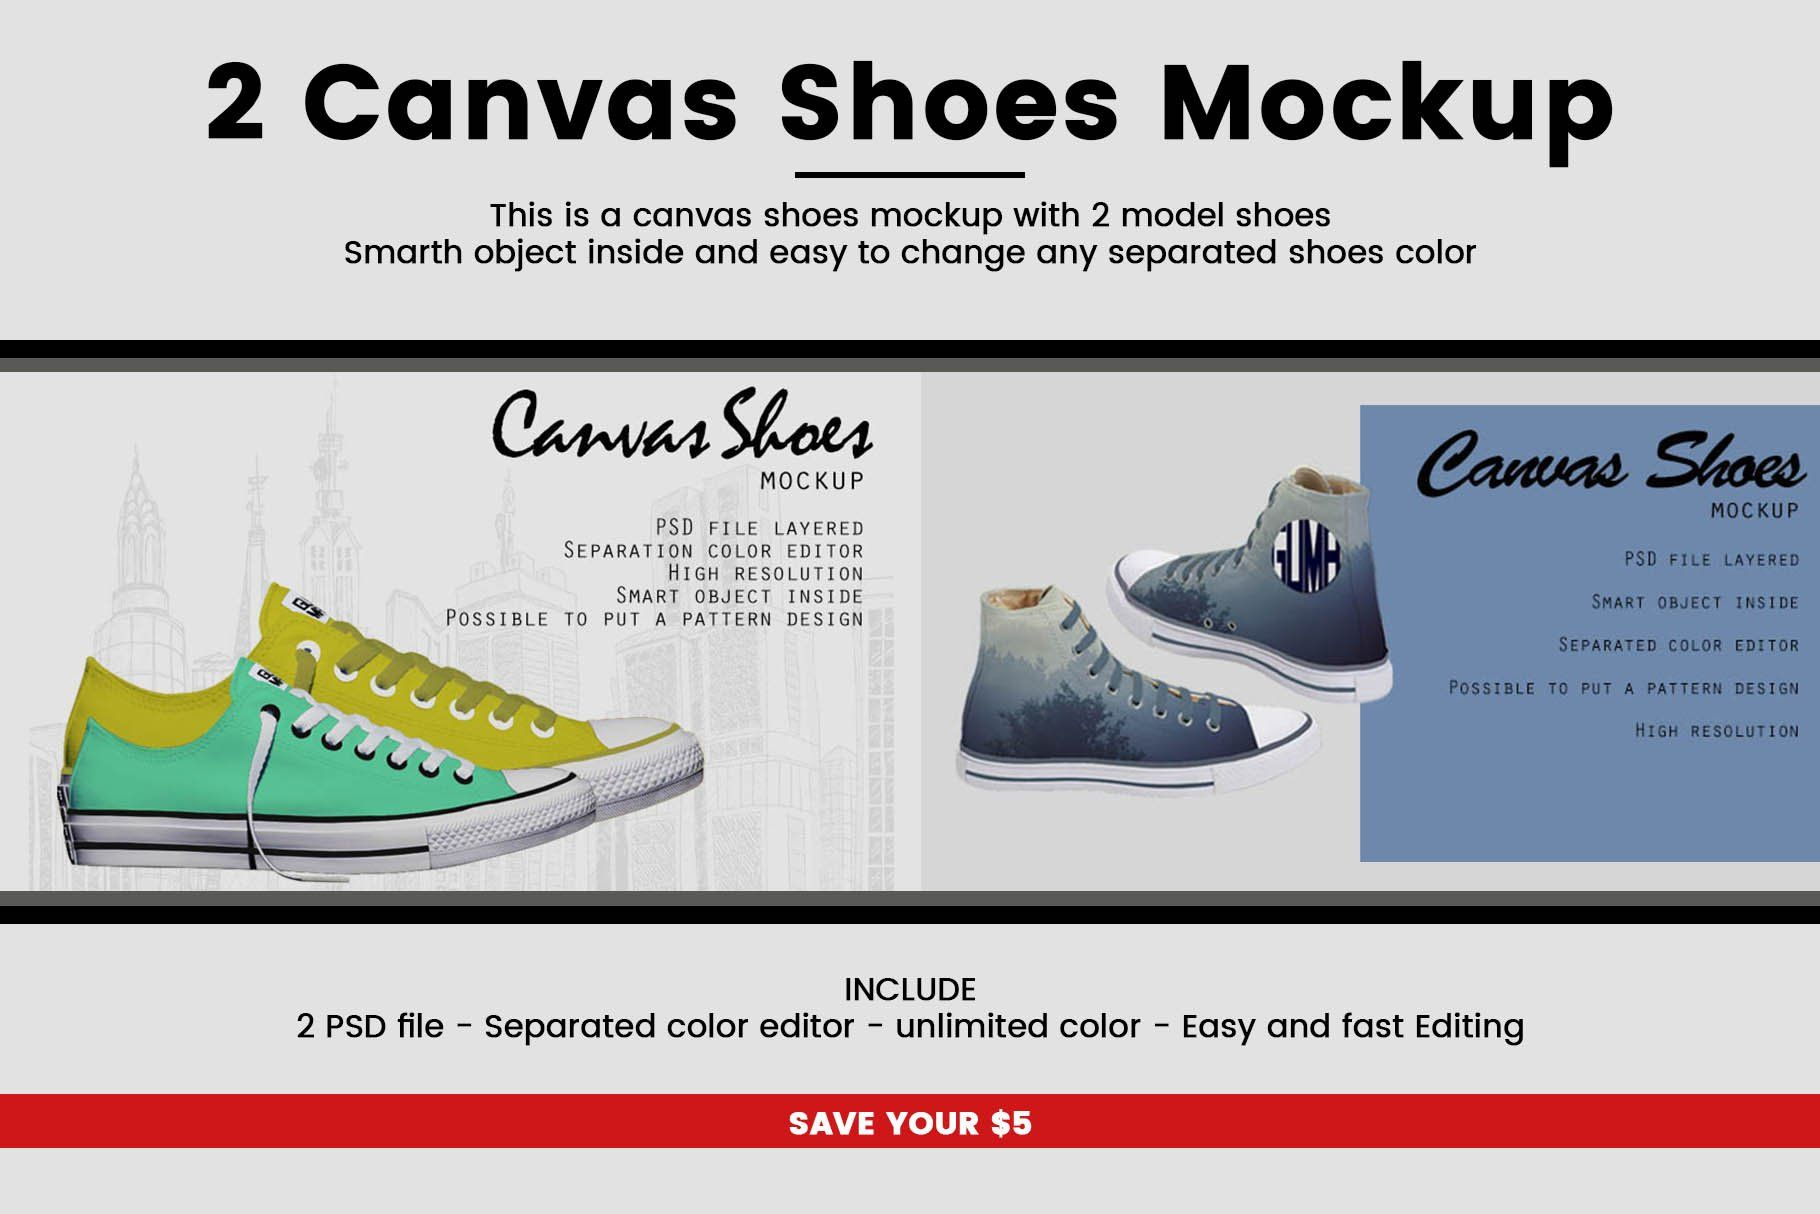 Download 2 Canvas Shoes Mockup Sponsored Design Product Show Perfect Ad Design Mockup Free Mockup Mockup Psd